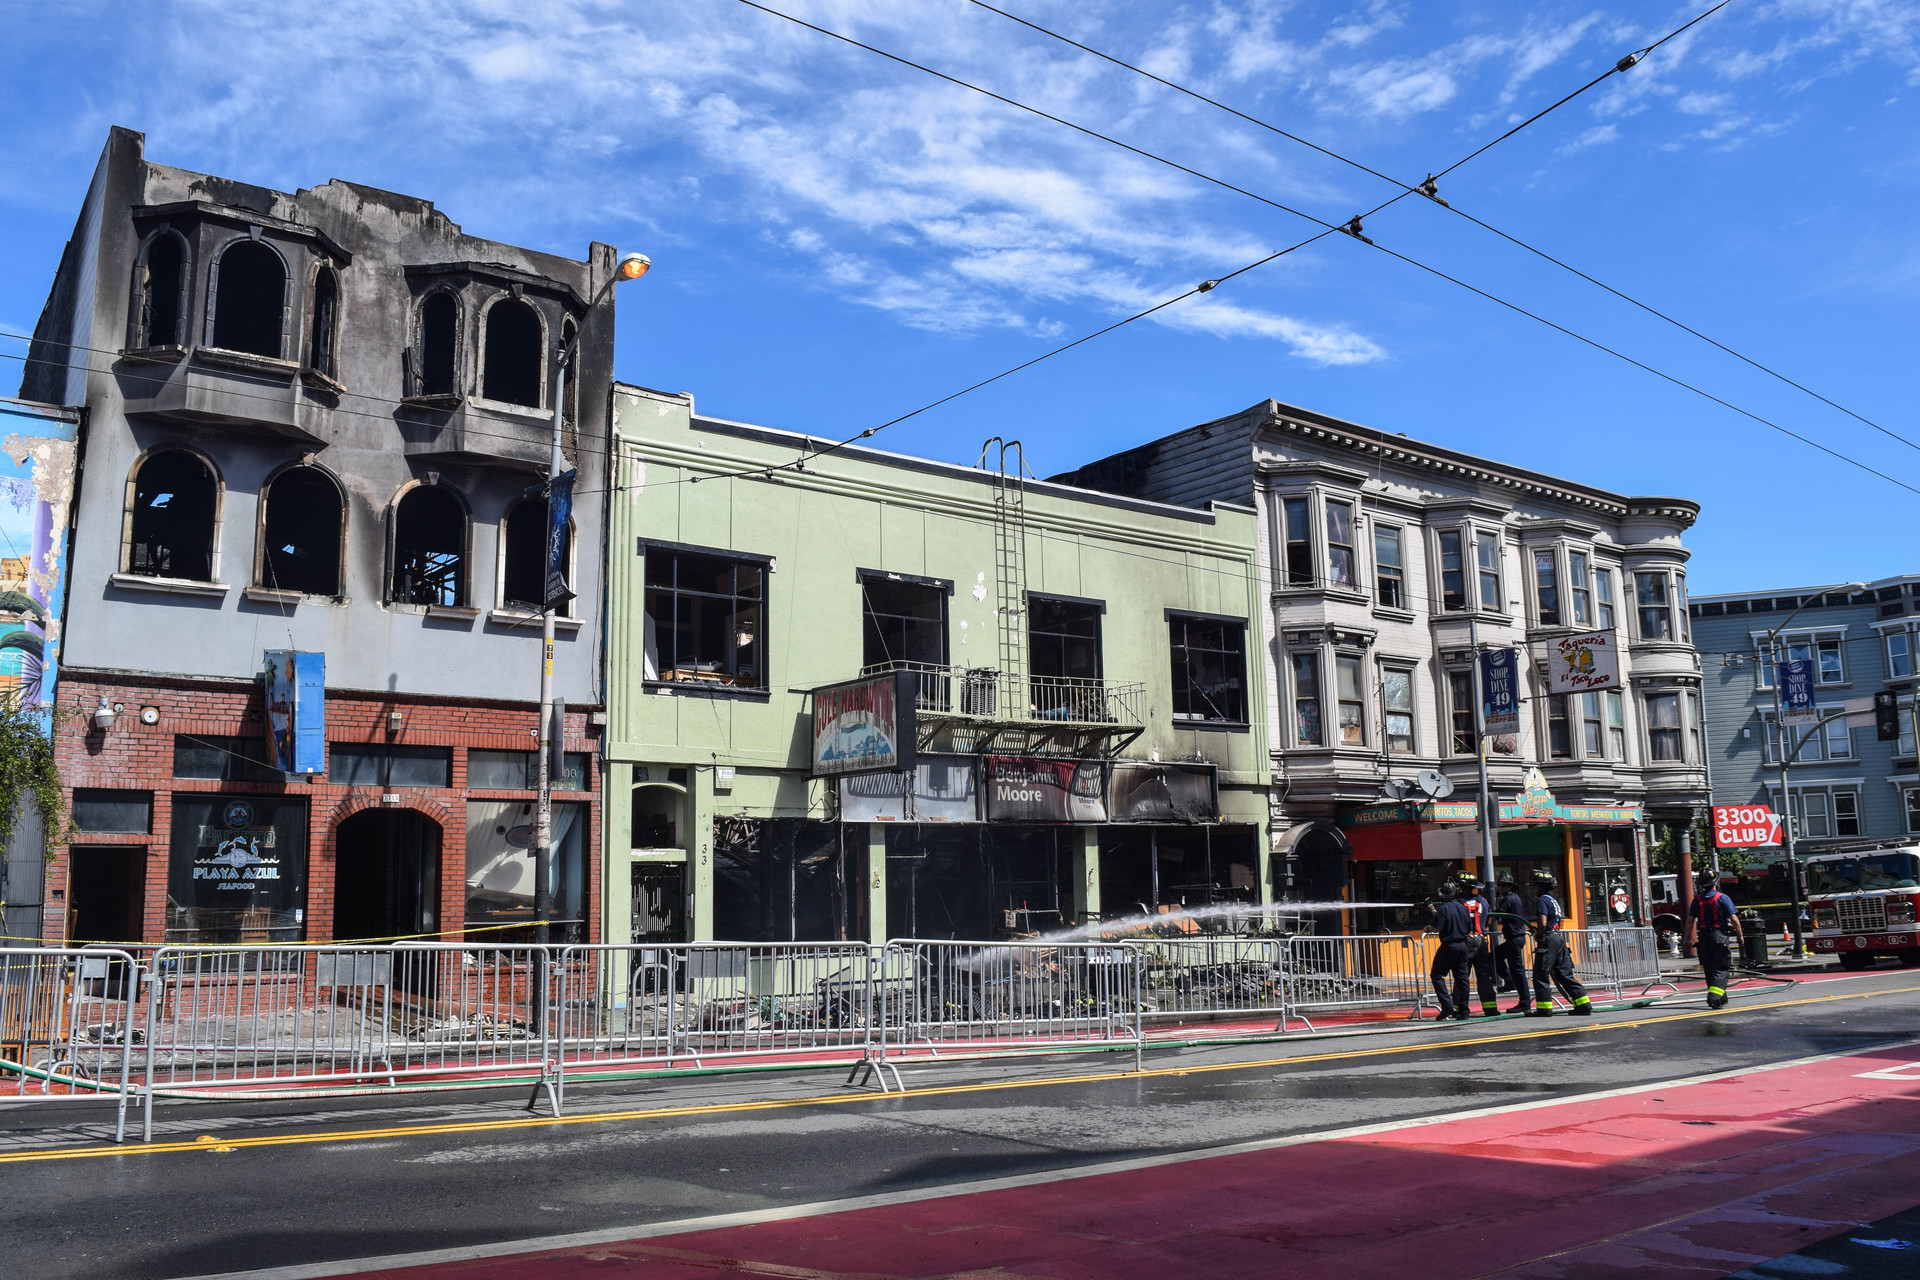 The aftermath on June 19 of a 5-alarm fire that started the previous day in San Francisco's Bernal Heights neighborhood, burned six buildings and displaced 57 people.